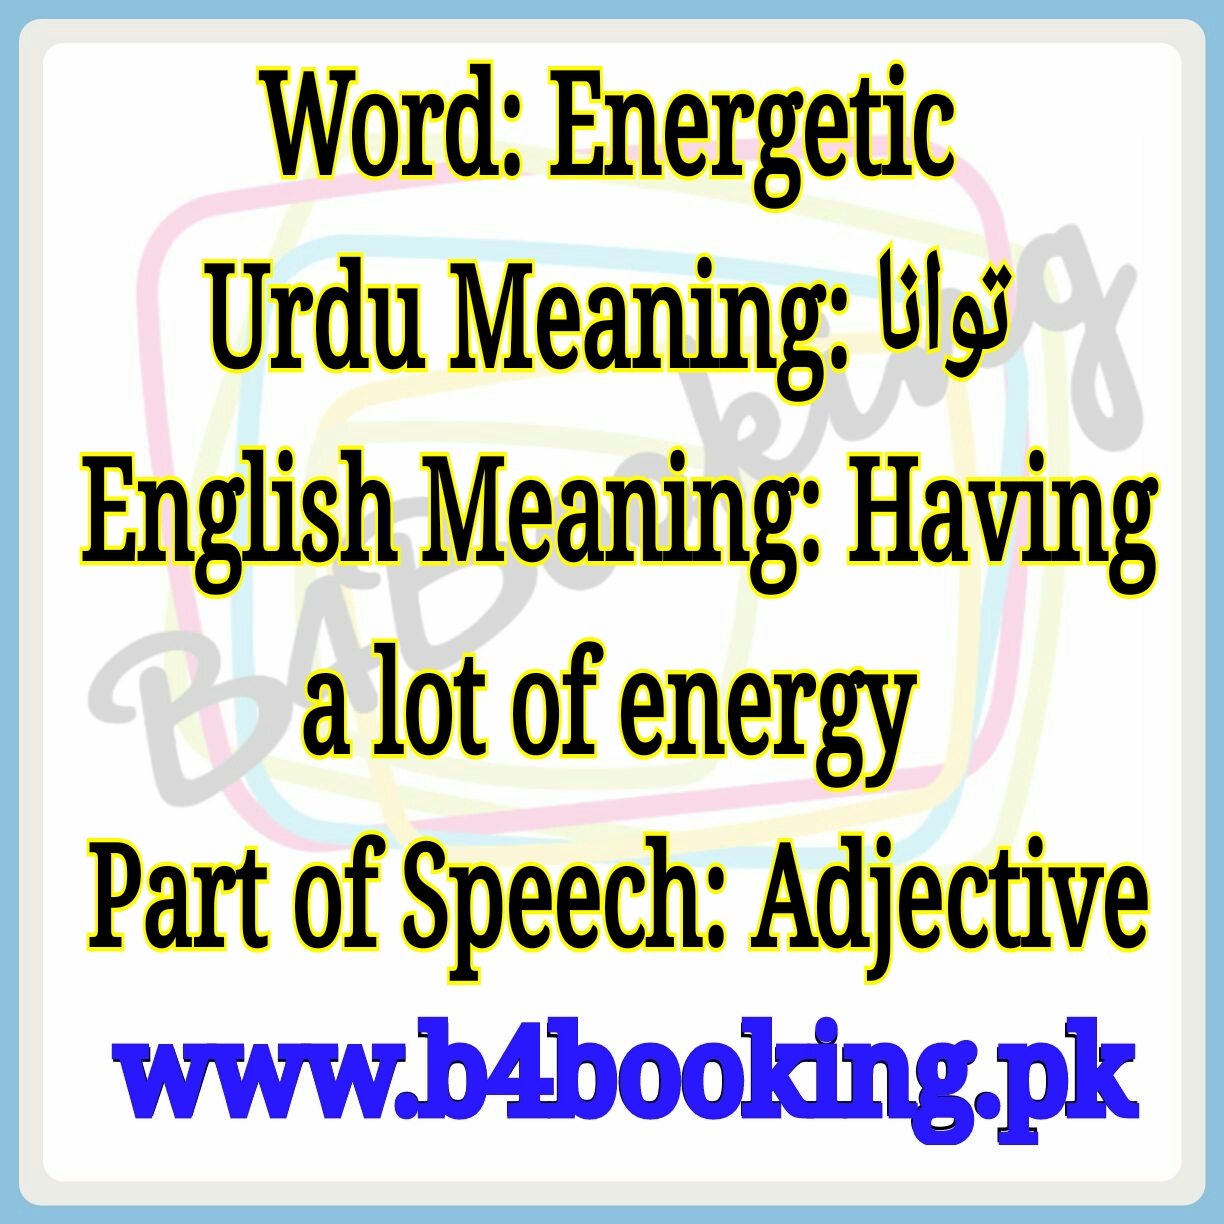 Energetic meaning